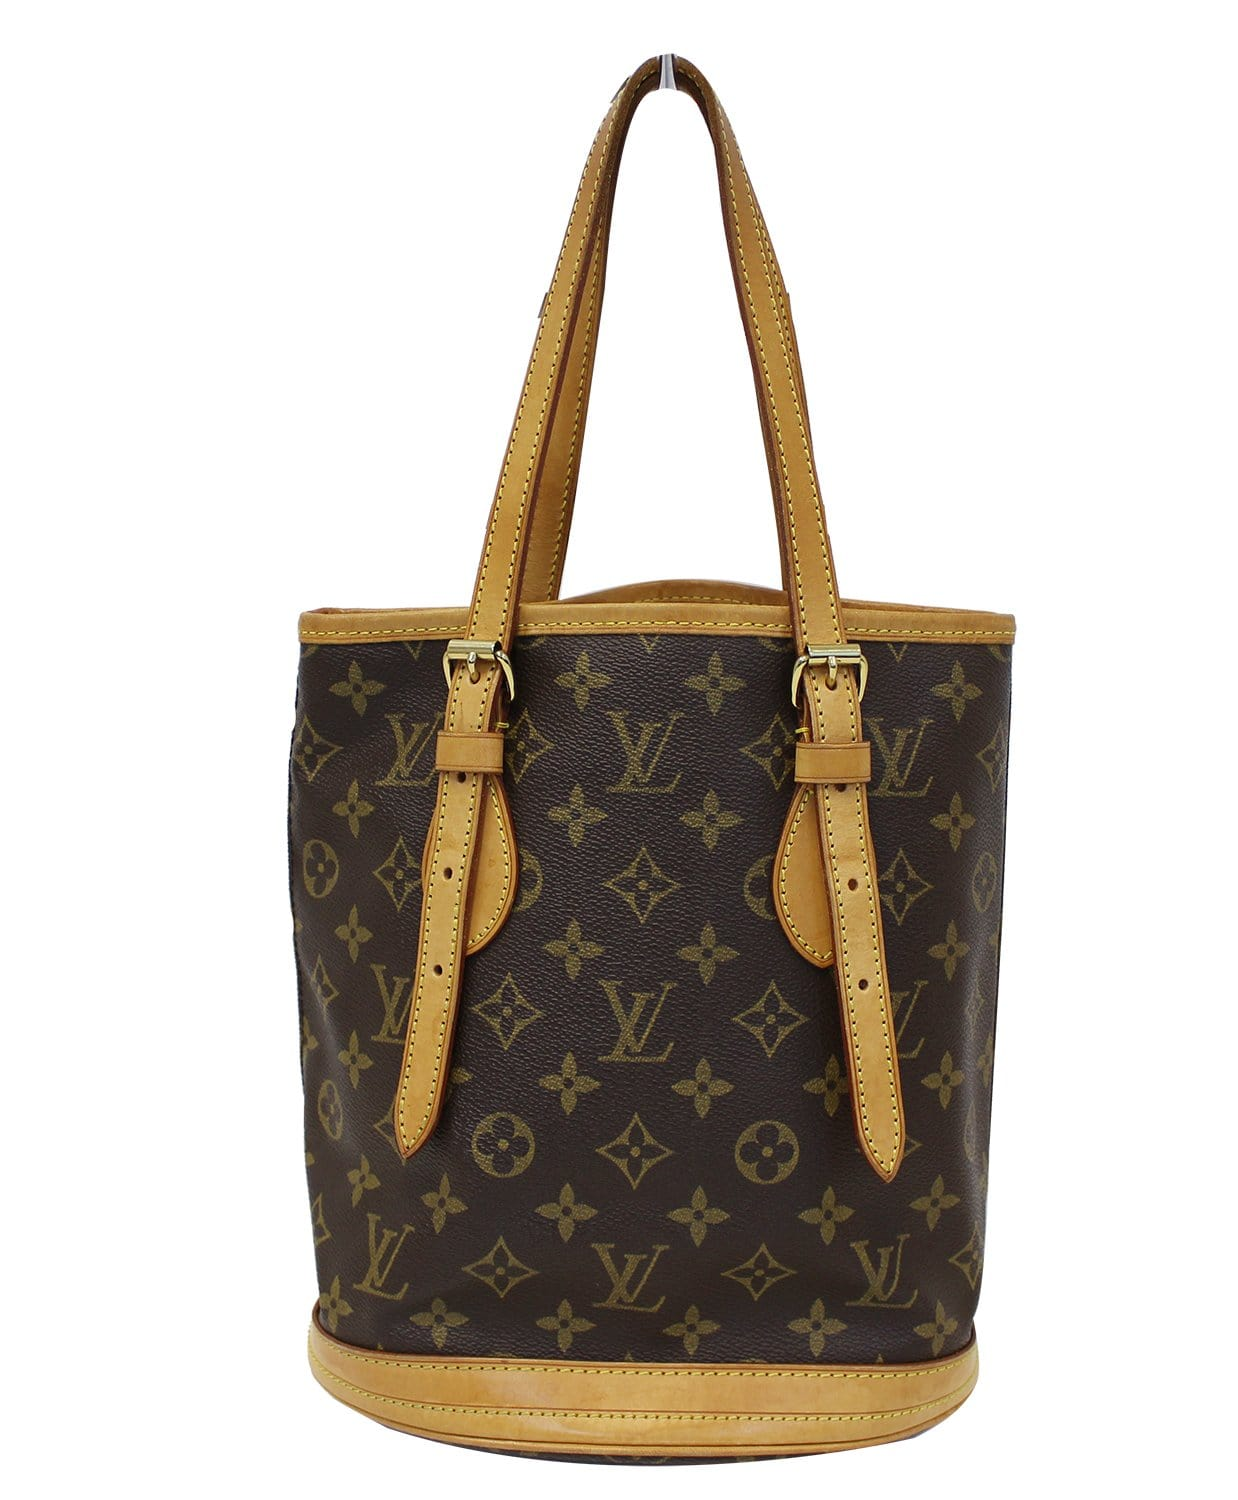 461d377537 LOUIS VUITTON Bucket PM Monogram Canvas Shoulder Bag